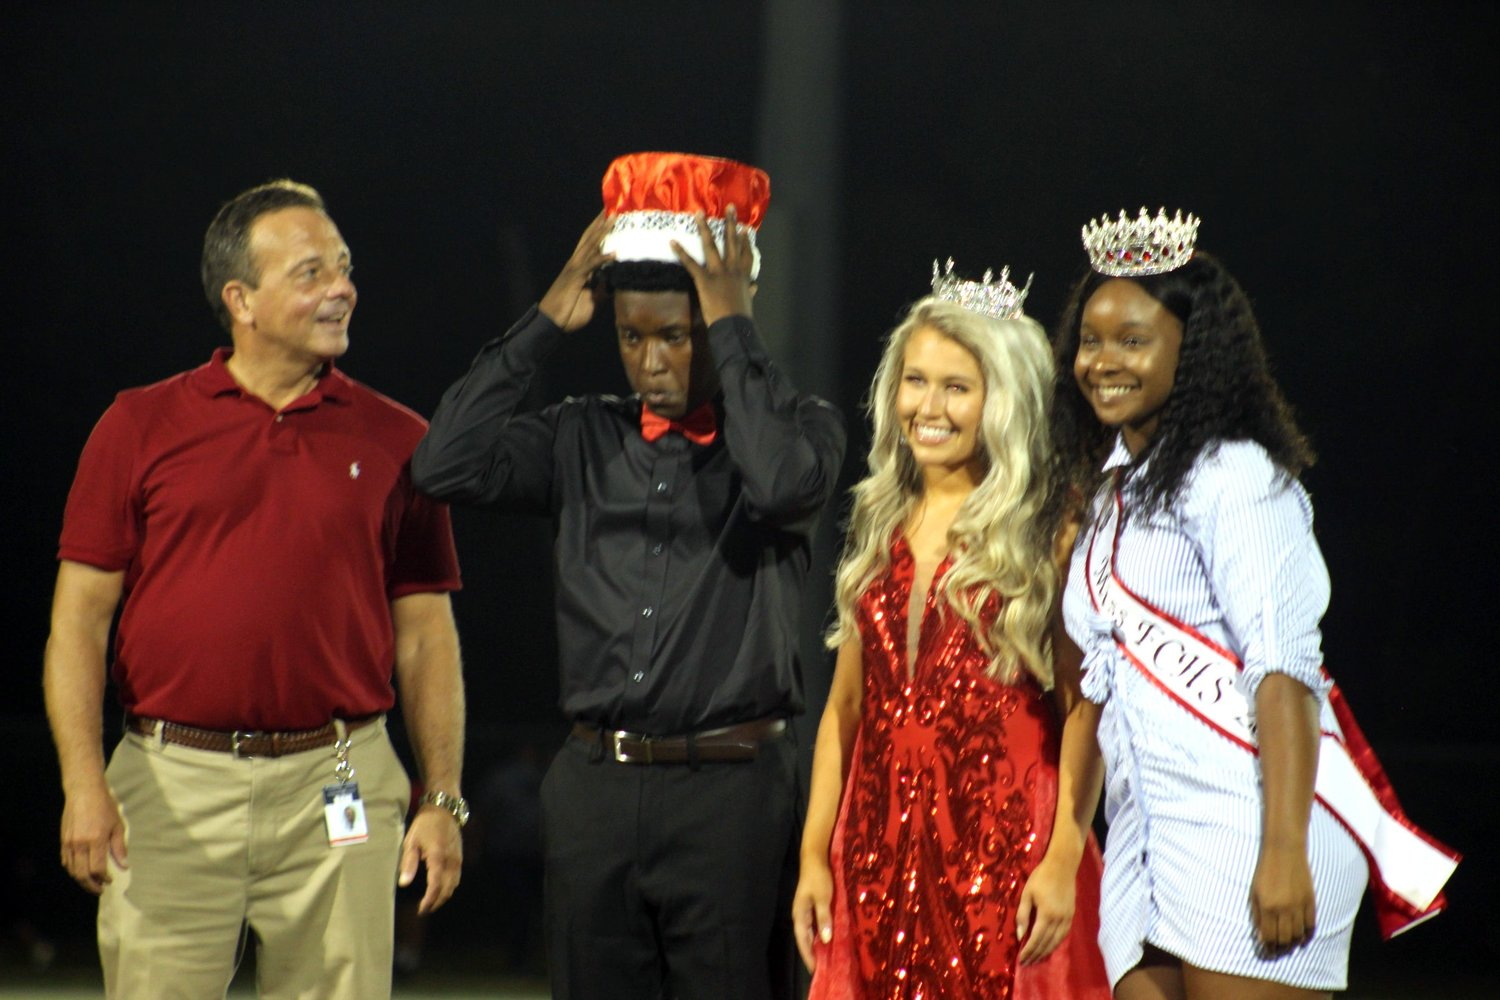 Newly crowned Mr. FCHS, Jarvis Turrell, adjusts his crown alongside the new Ms. FCHS Jadyn Luberto, at halftime of the Sept.  11 pre-season classic. At left is principal Laurence Pender. and at right last year's Ms. FCHS, Honesti Williams